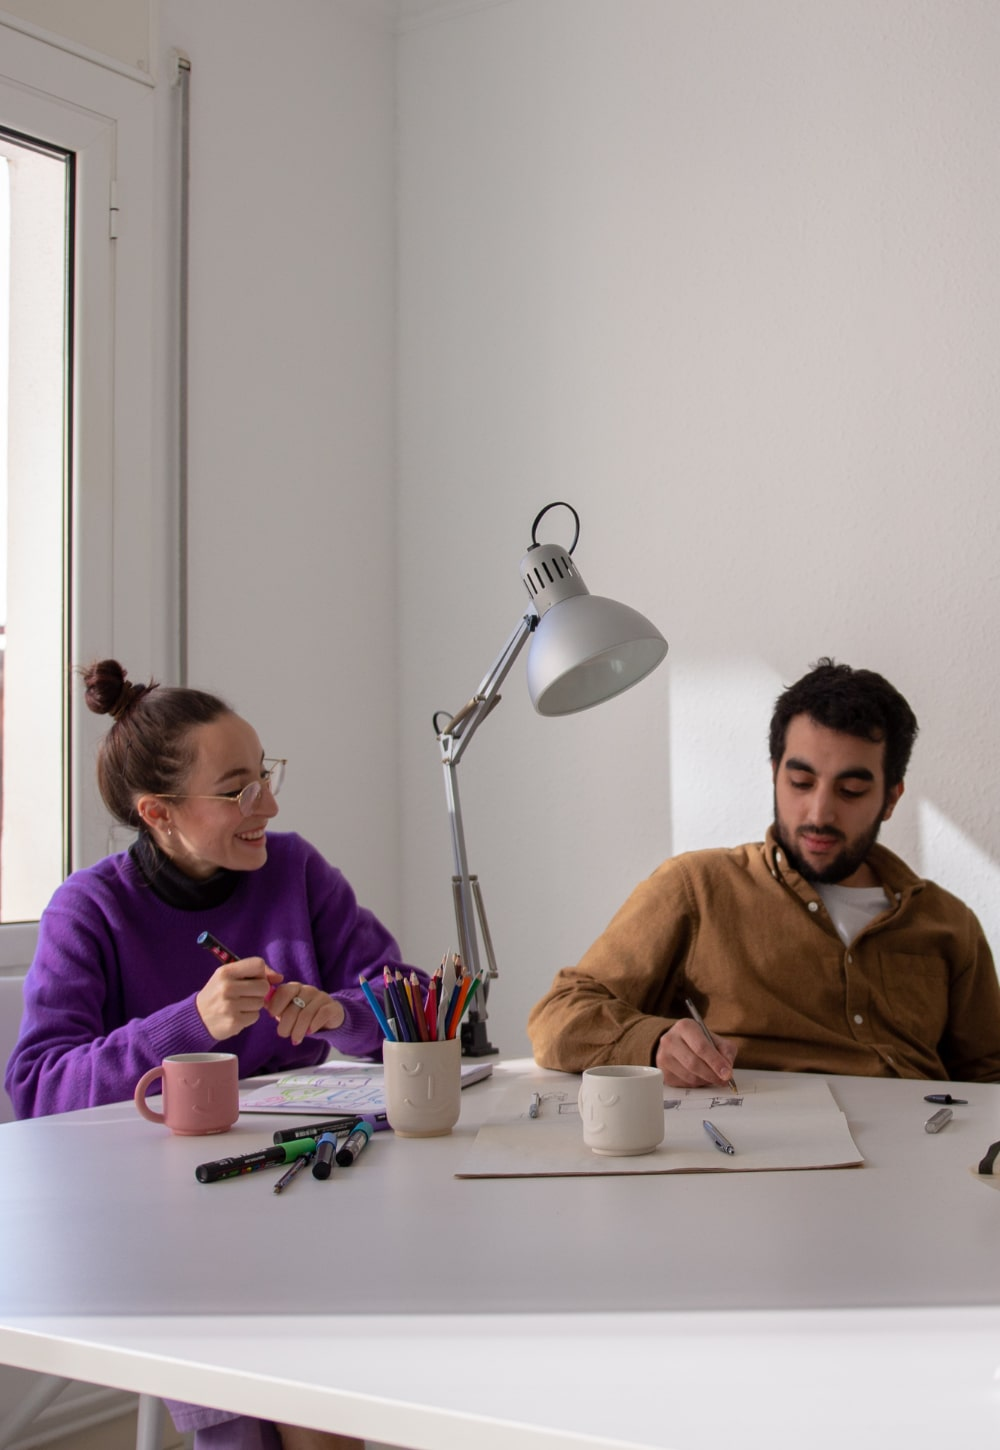 STORE EXCLUSIVES - Meet the Maker: Anas & Cinta